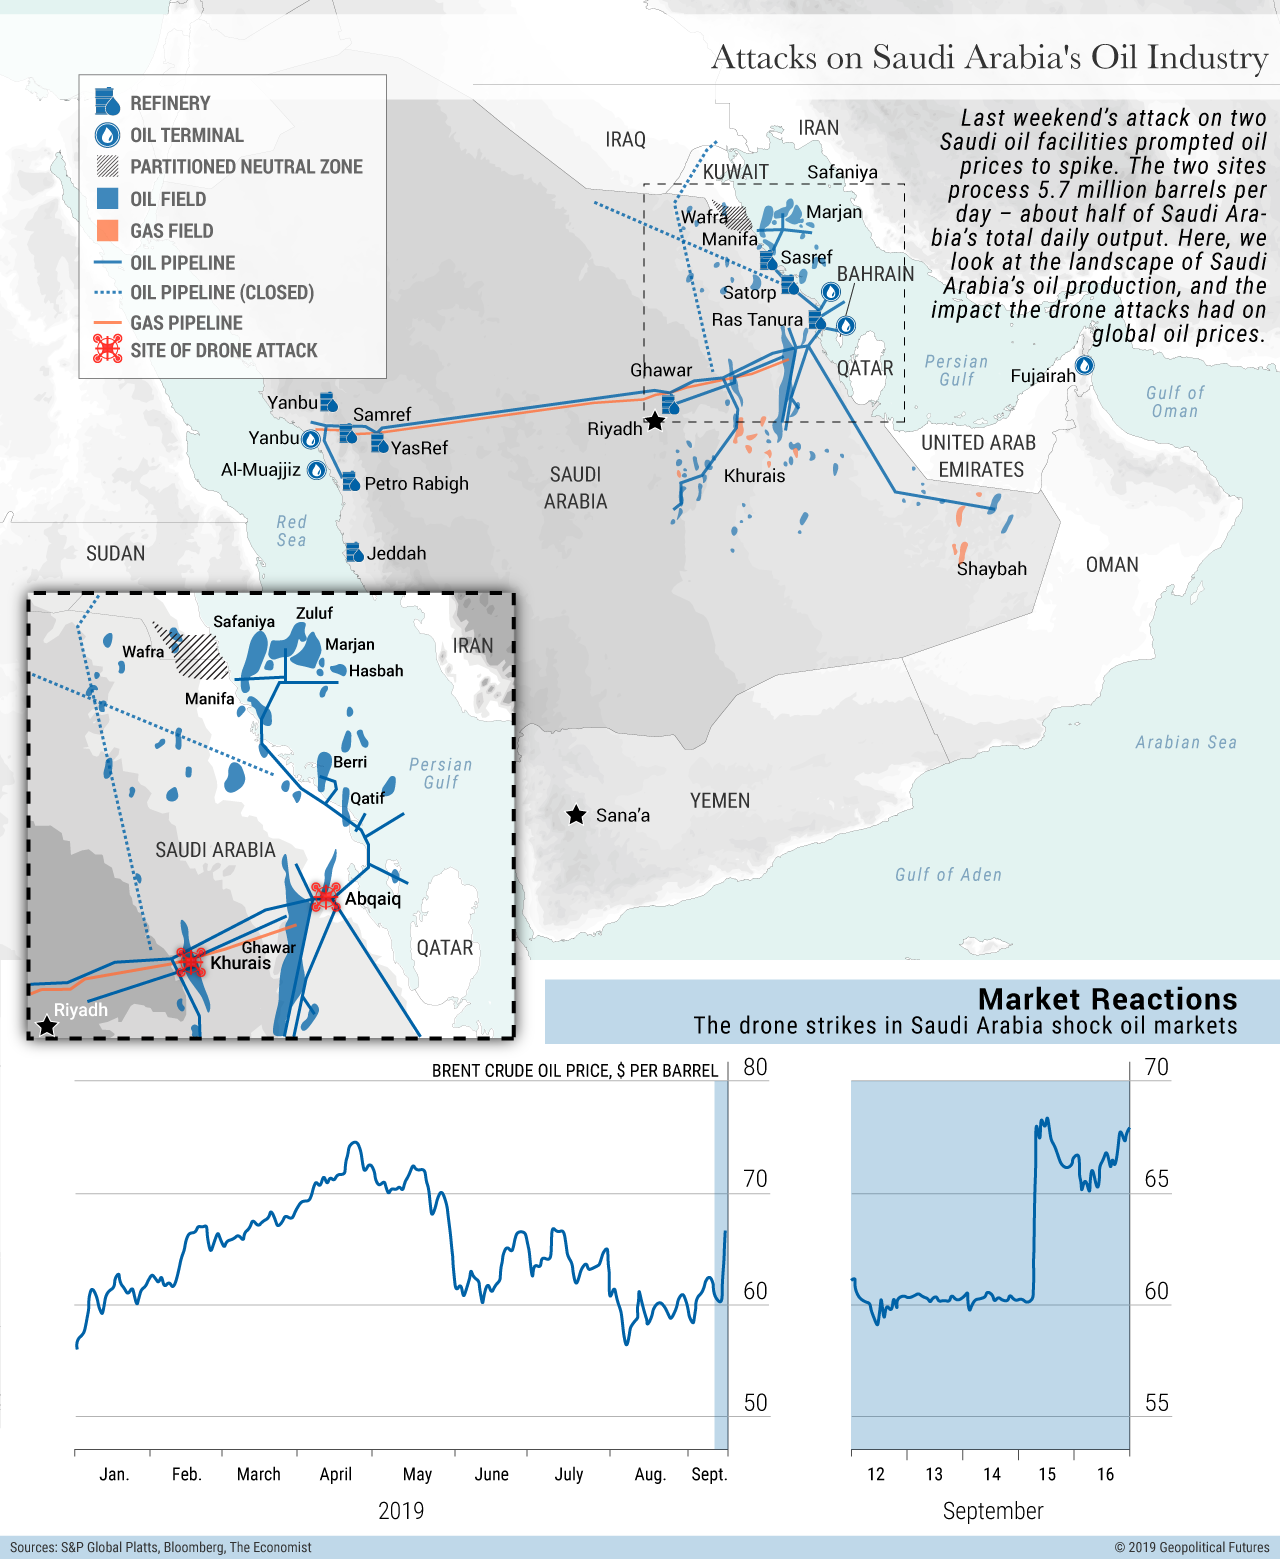 Attacks on Saudi Arabia's Oil Industry